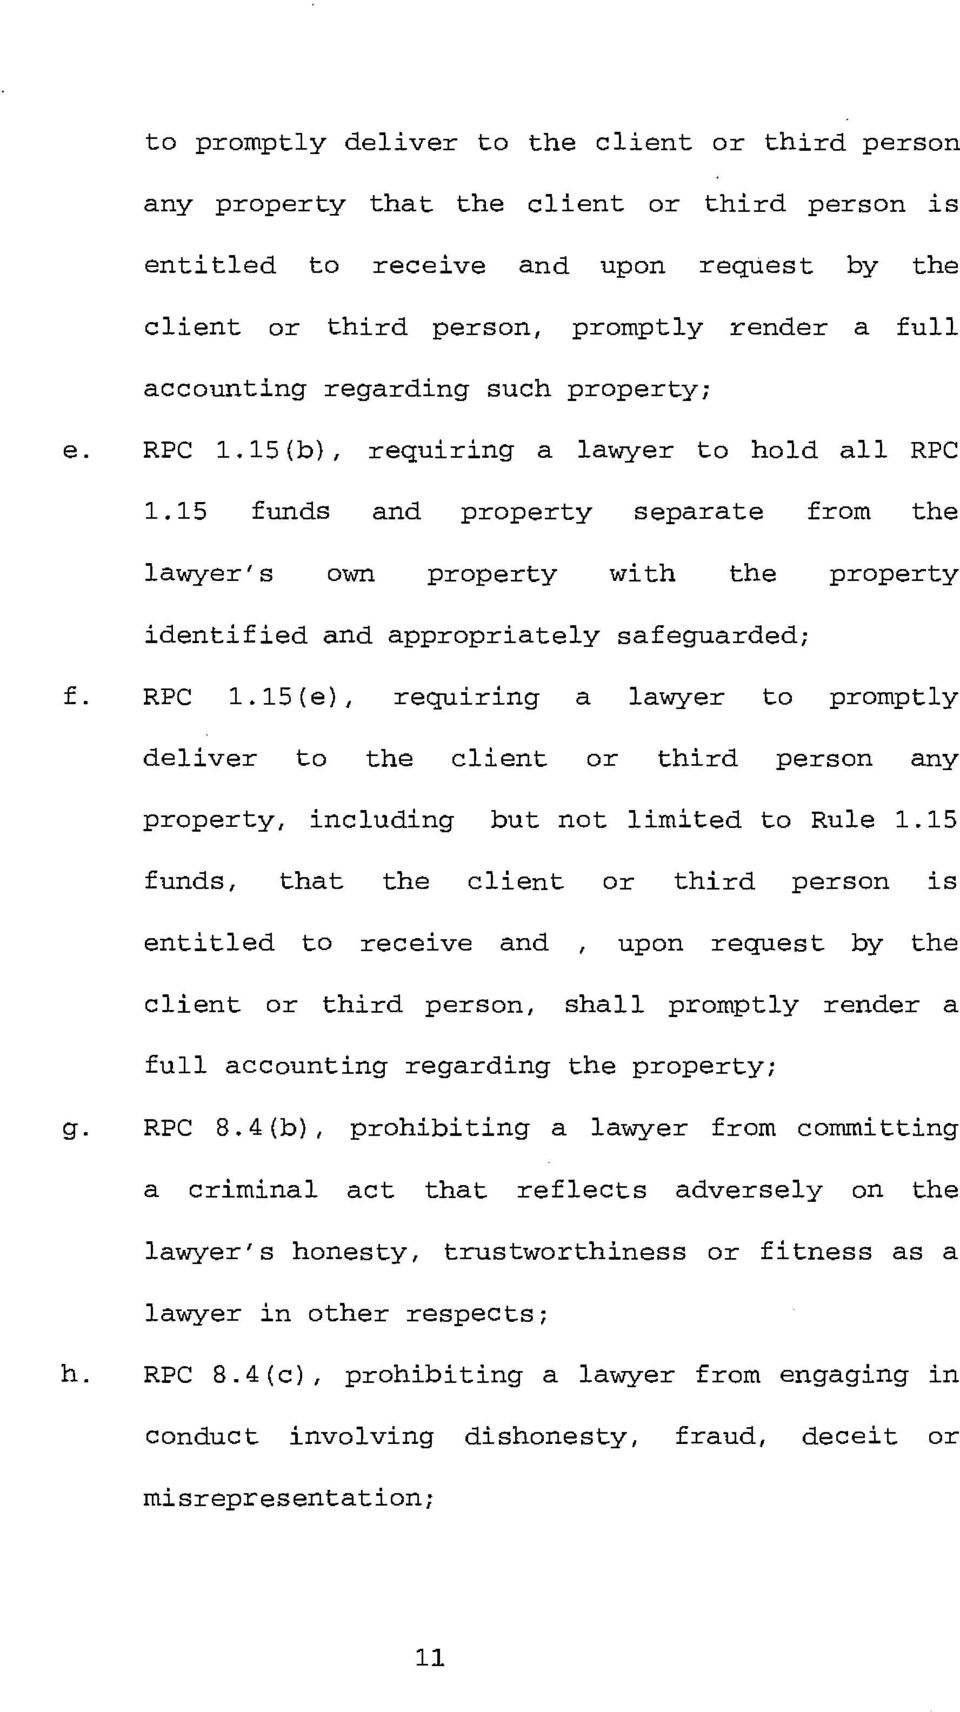 15 funds and property separate from the lawyer's own property with the property identified and appropriately safeguarded; f. RPC 1.